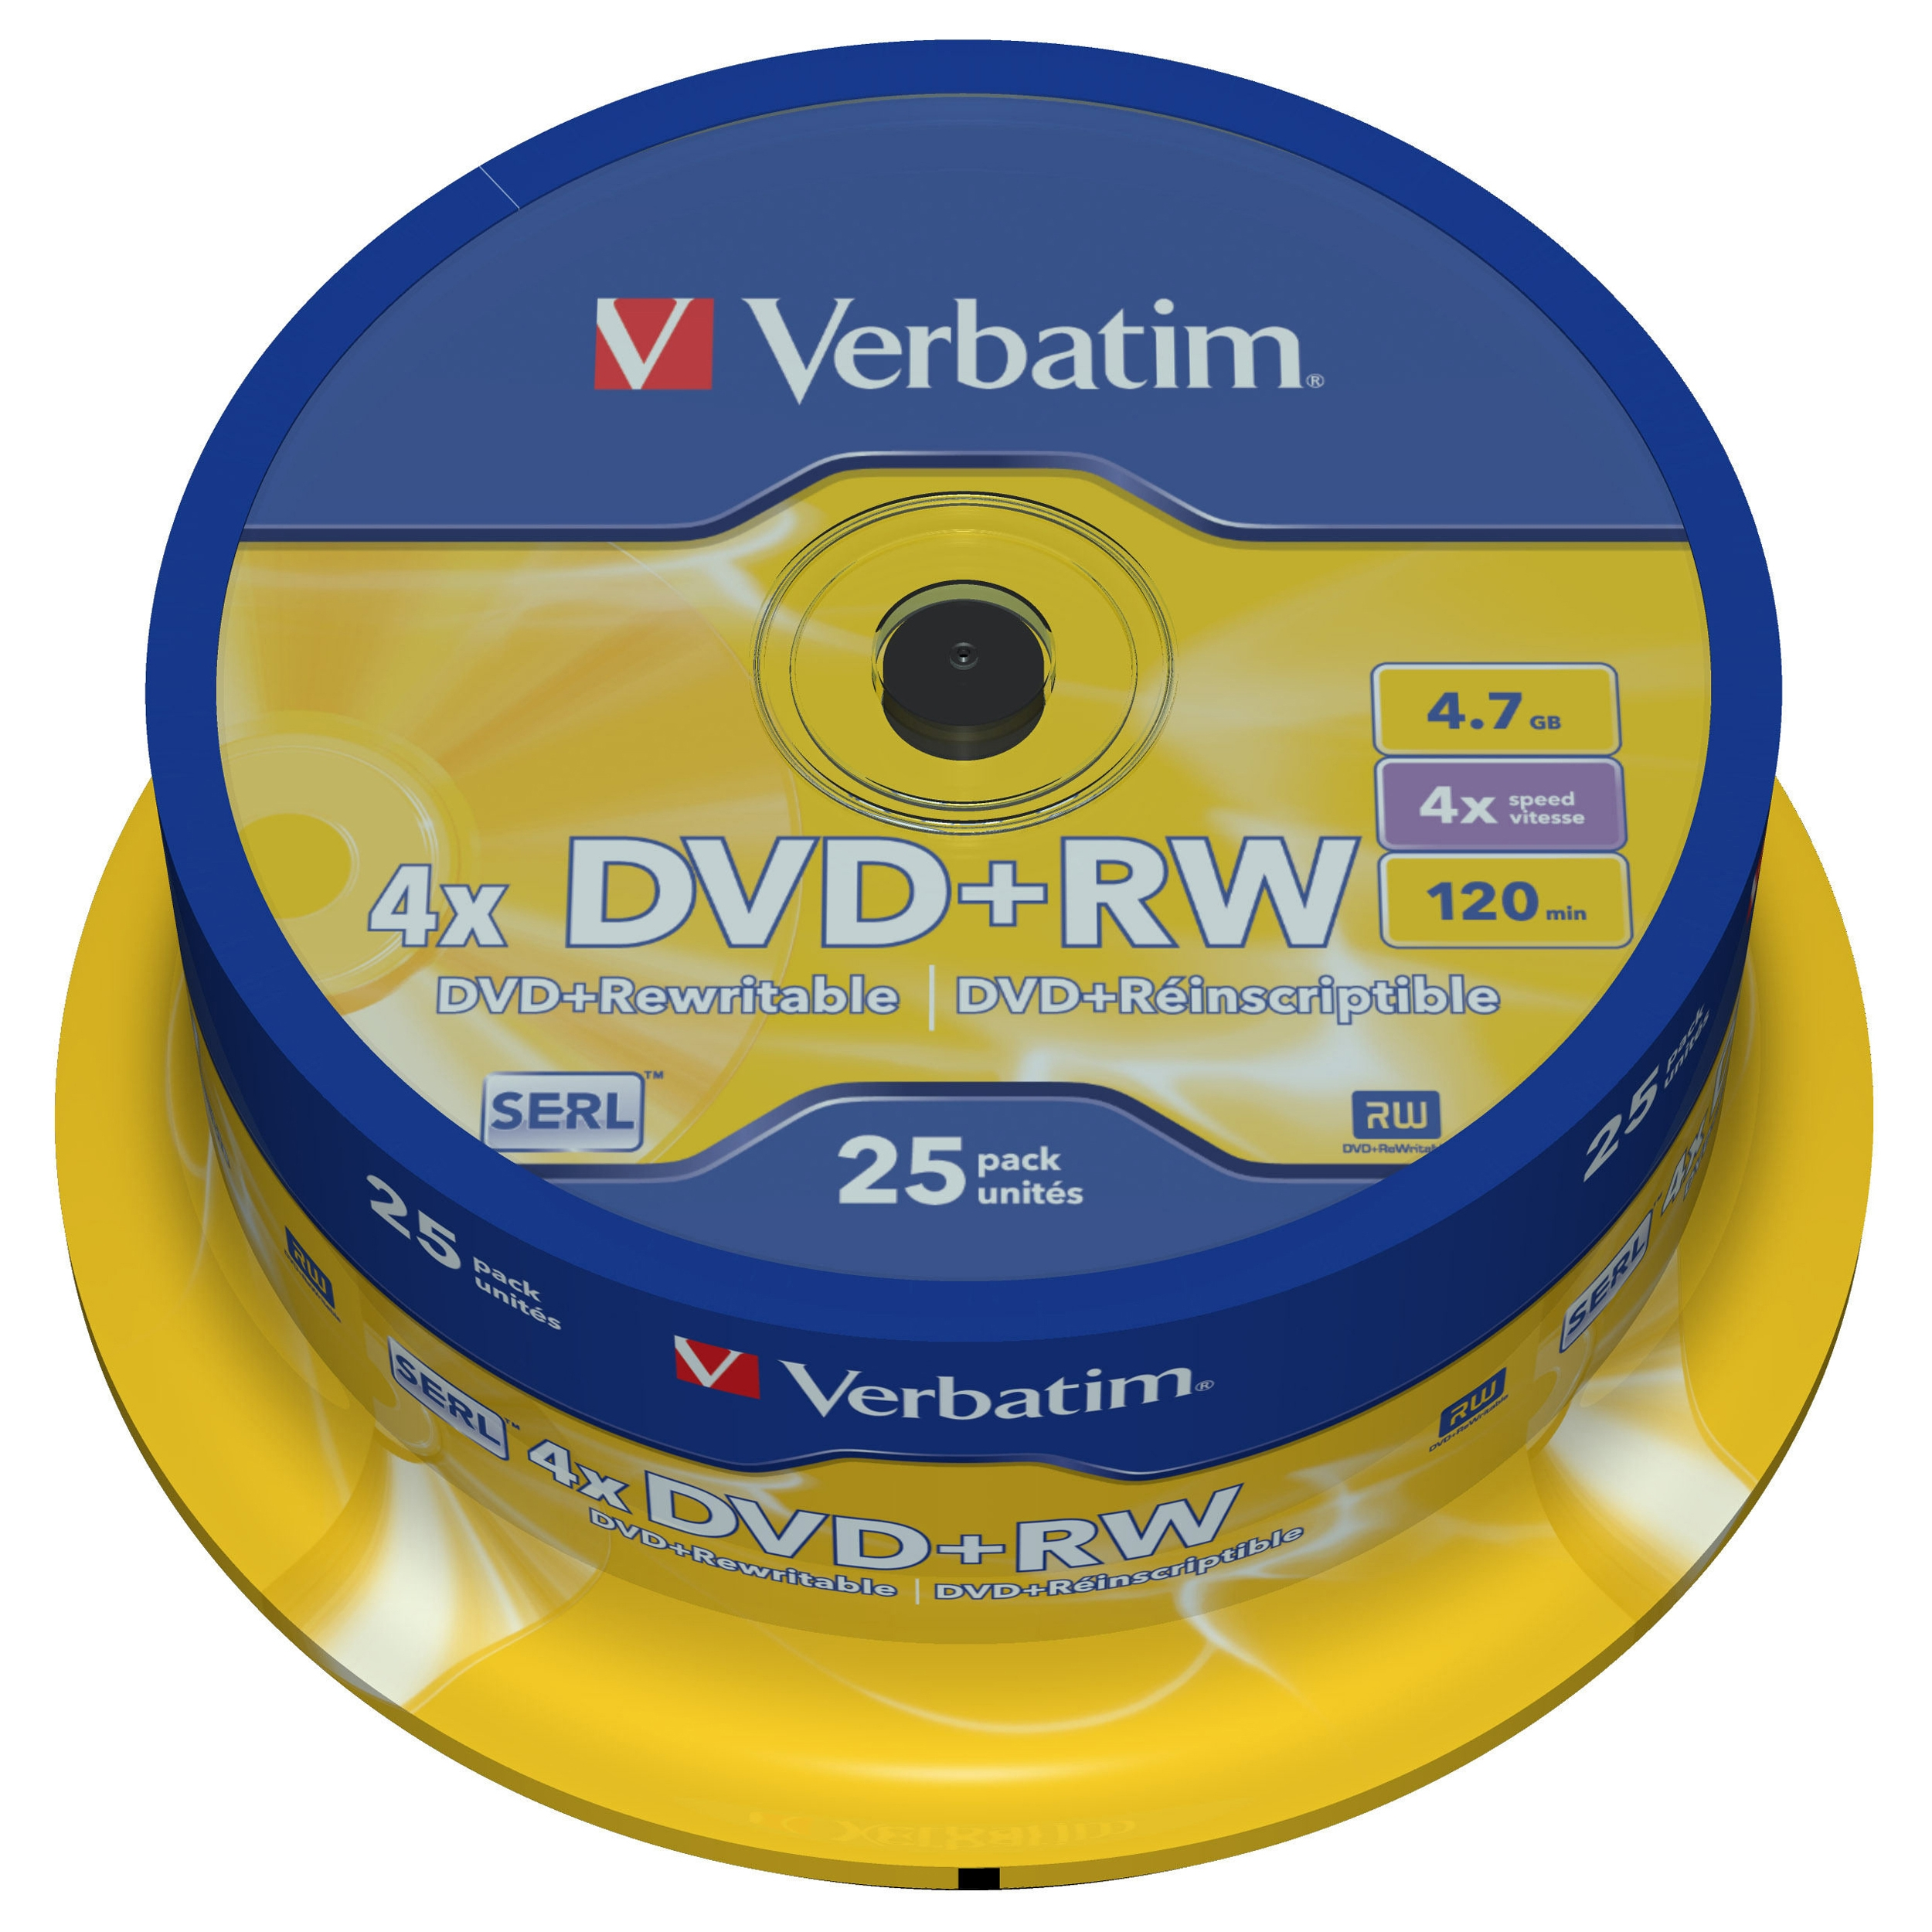 Verbatim 43489 Dvd+rw 4.7gb 4x Datalifeplus Branded Surface 25pk Spindle Taa Compliant